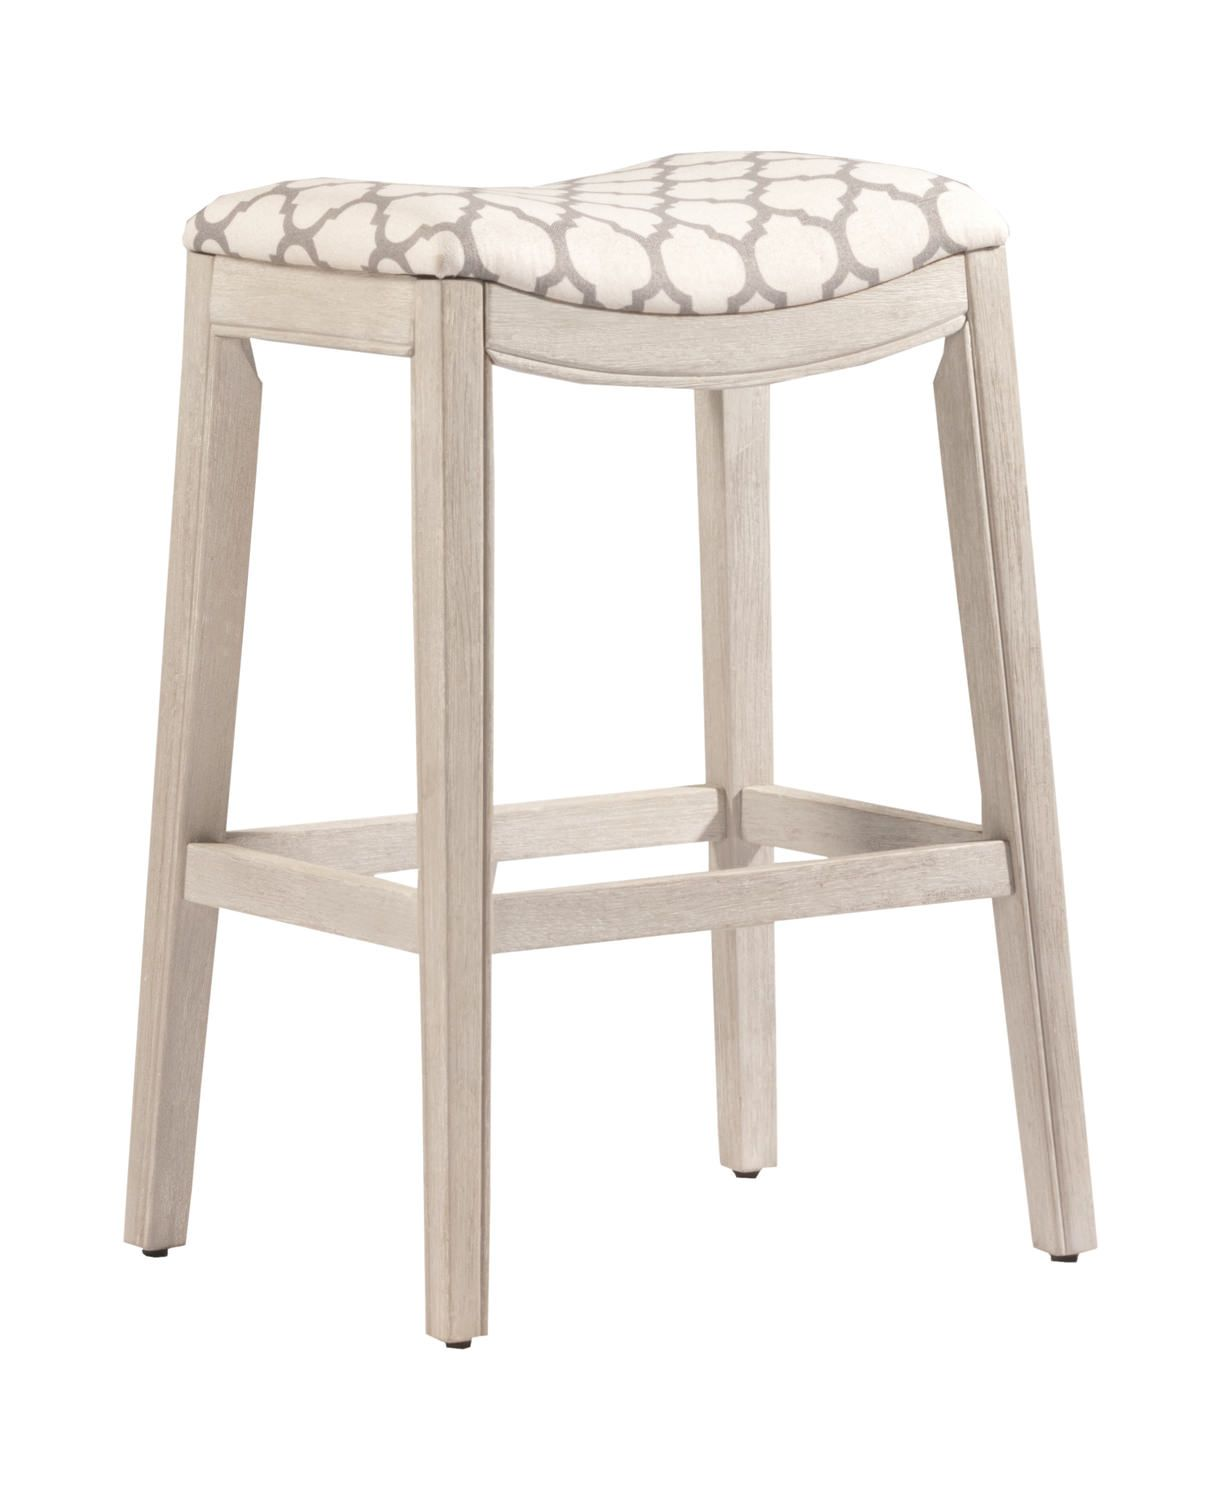 Sorella White Saddle Seat Stool Hom Furniture Hillsdale Furniture Backless Stools Counter Height Stools